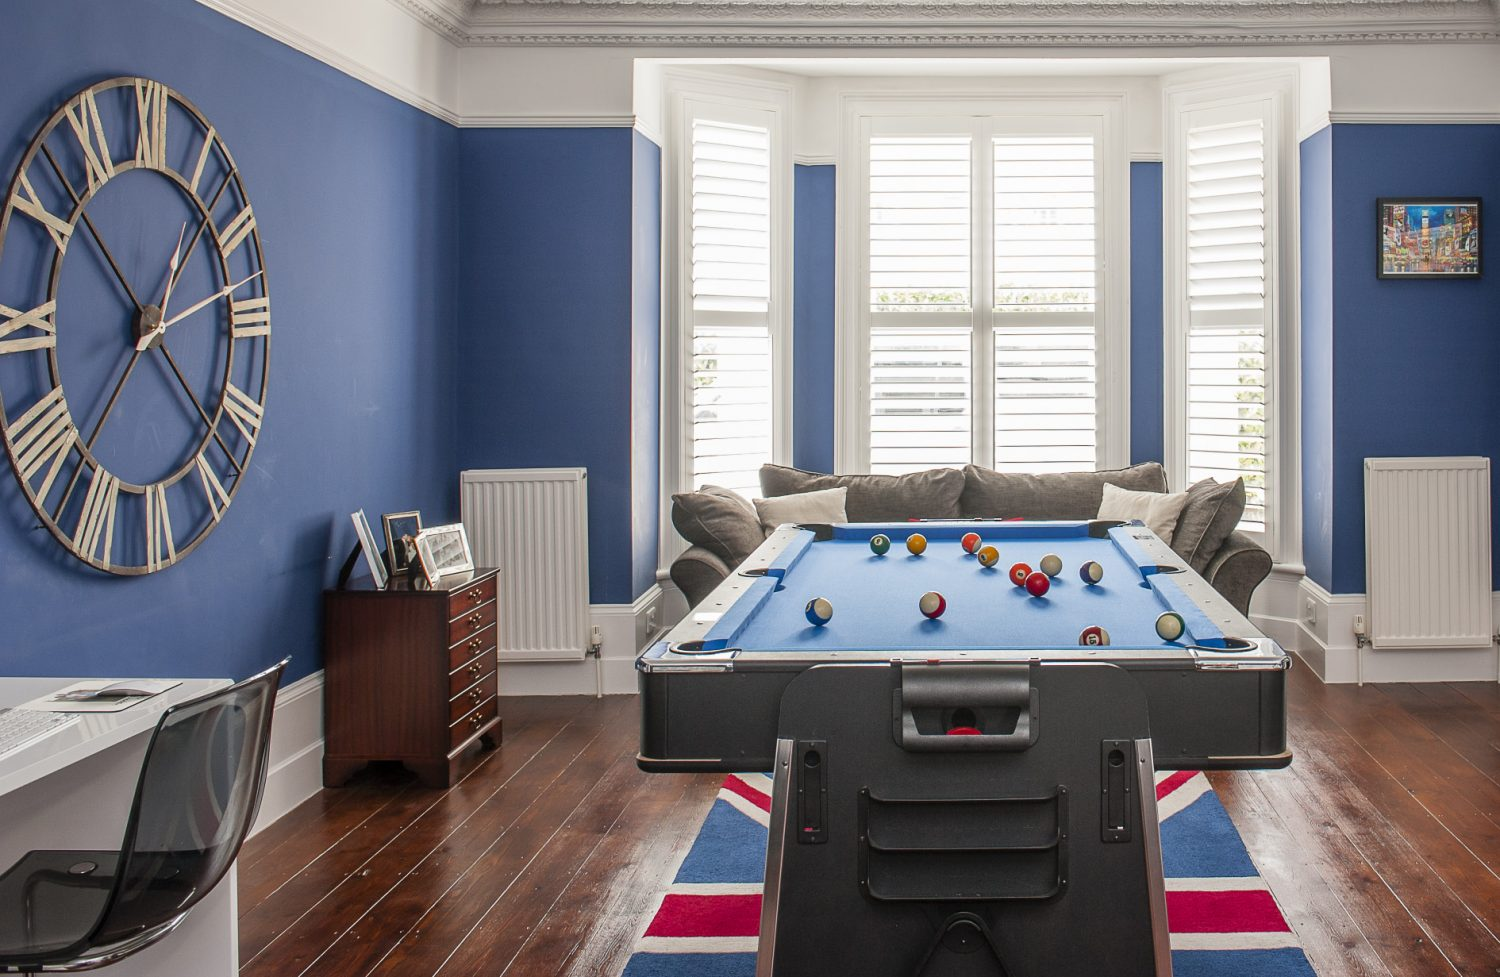 What will eventually become a formal dining room is currently the ultimate gaming room gathered around a pool table that flips over for air hockey in the centre